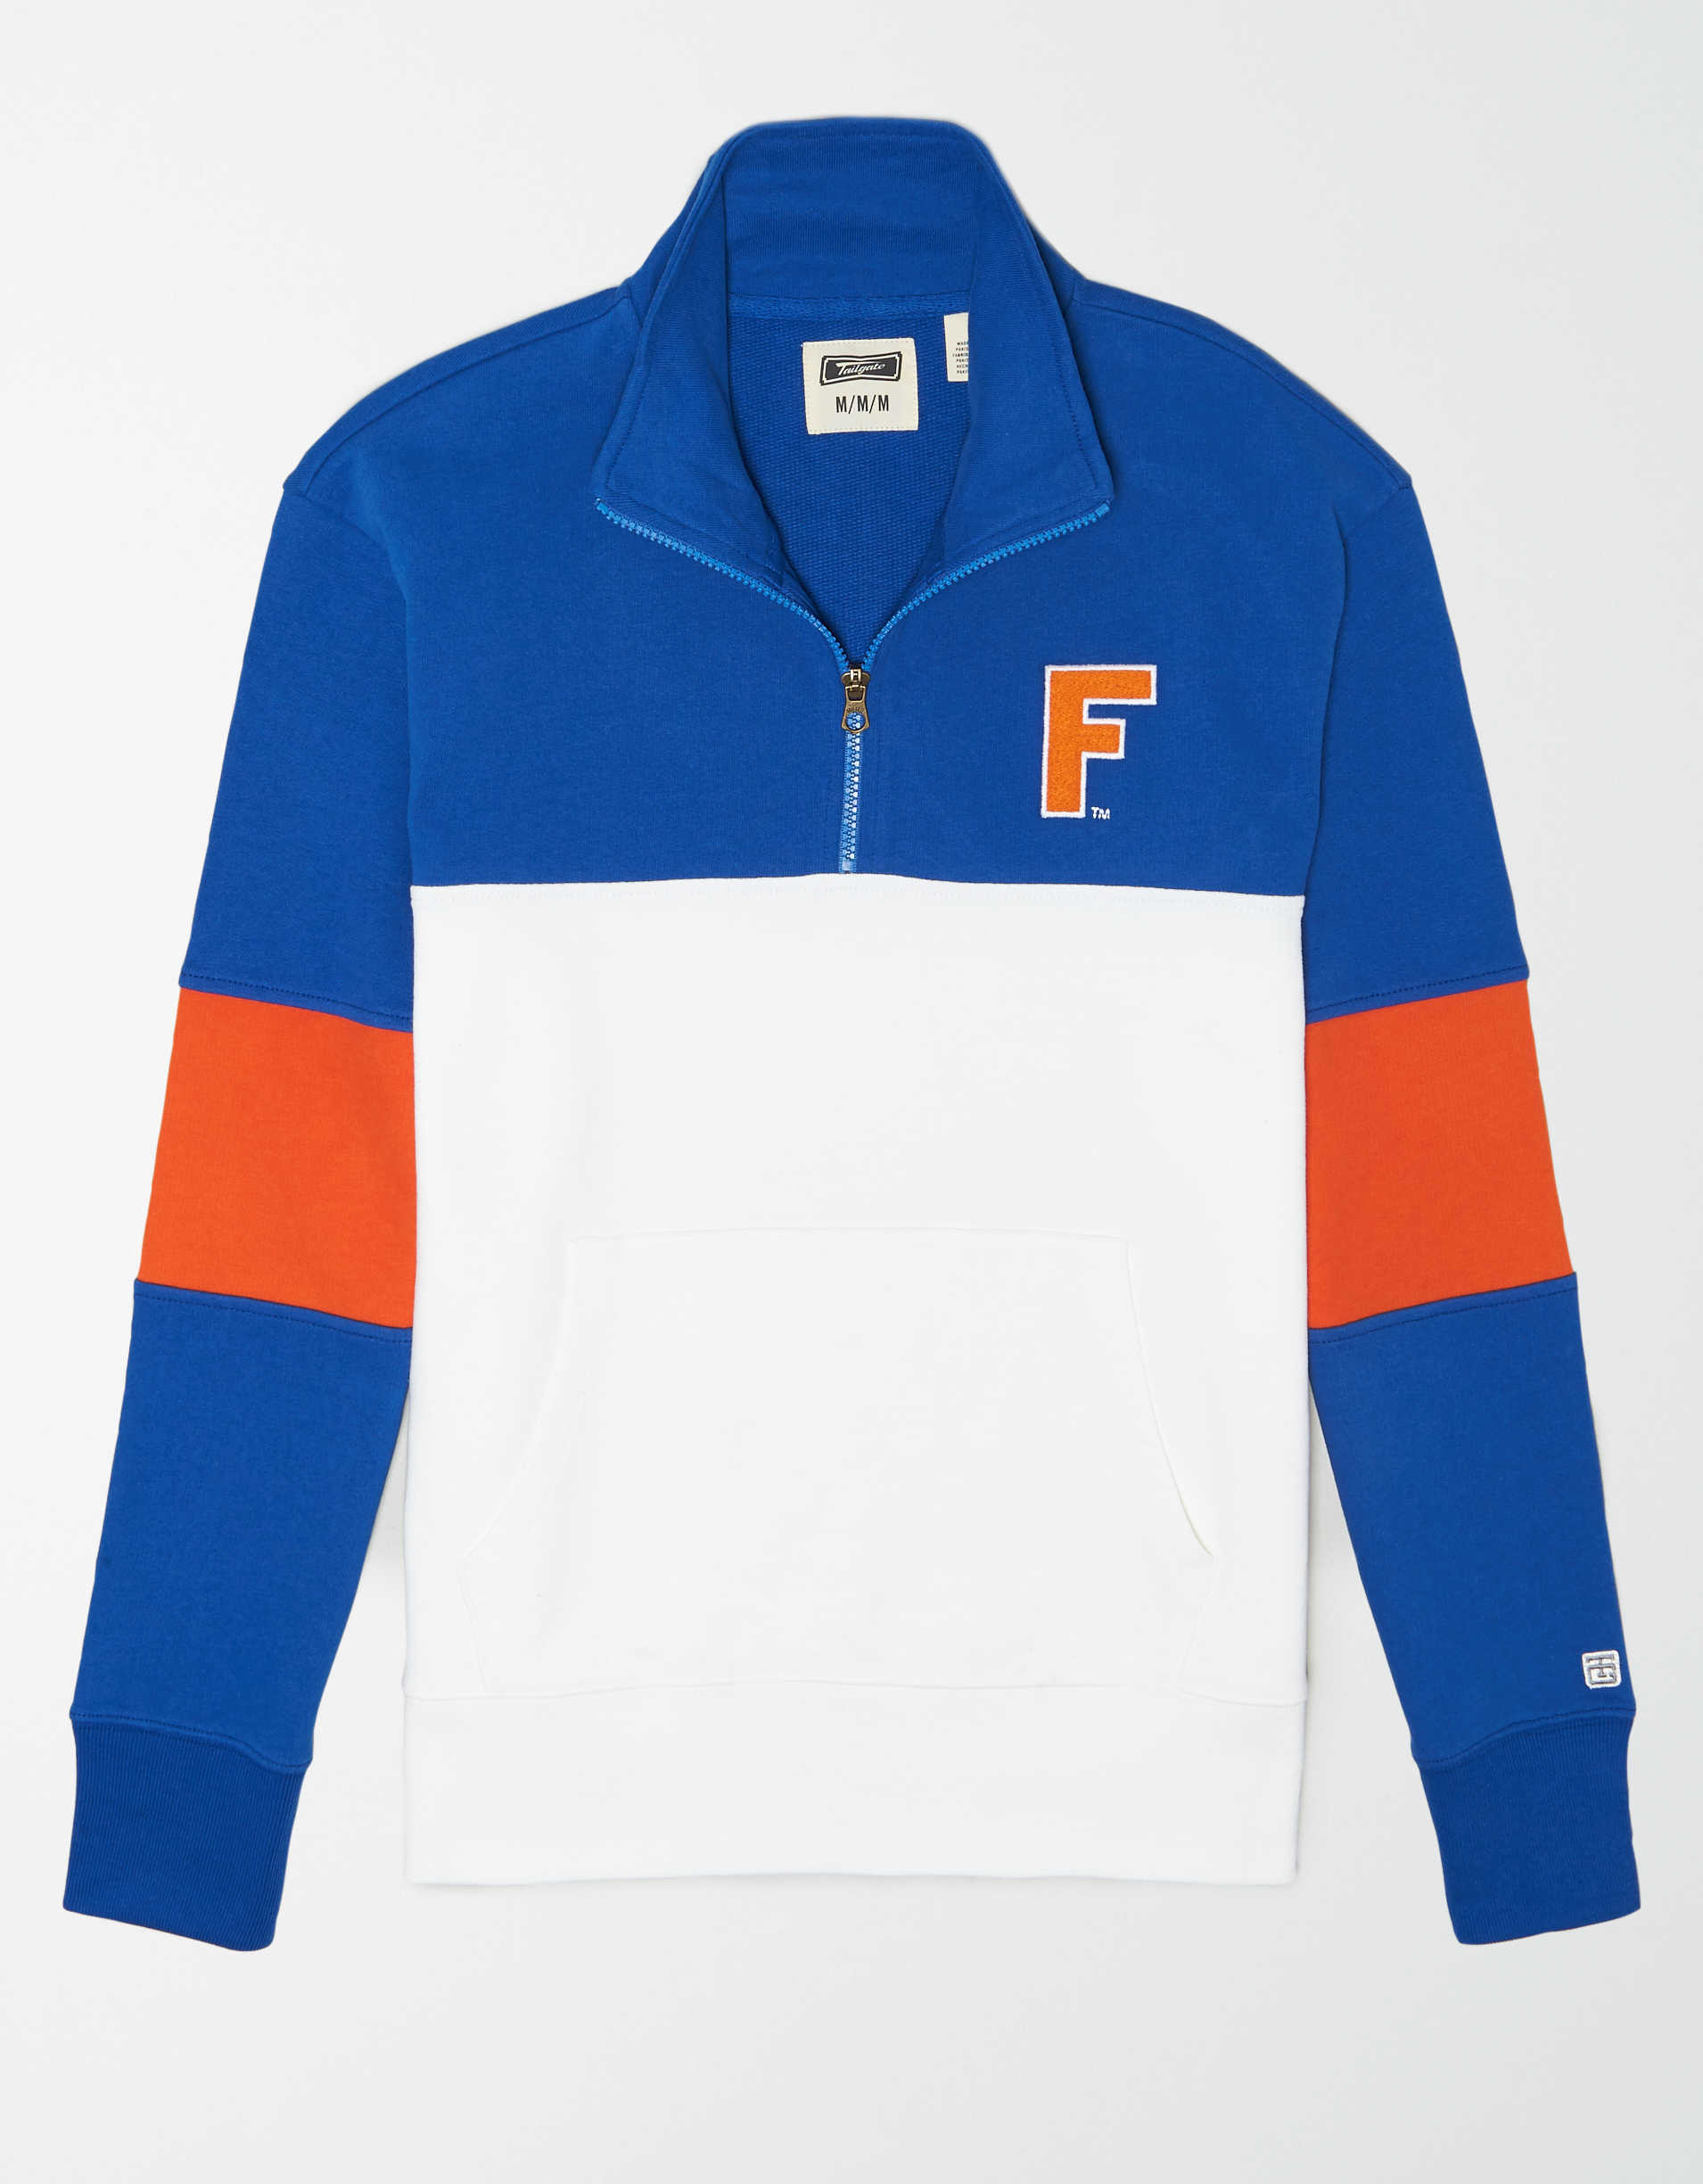 Tailgate Men's Florida Gators Quarter-Zip Sweatshirt